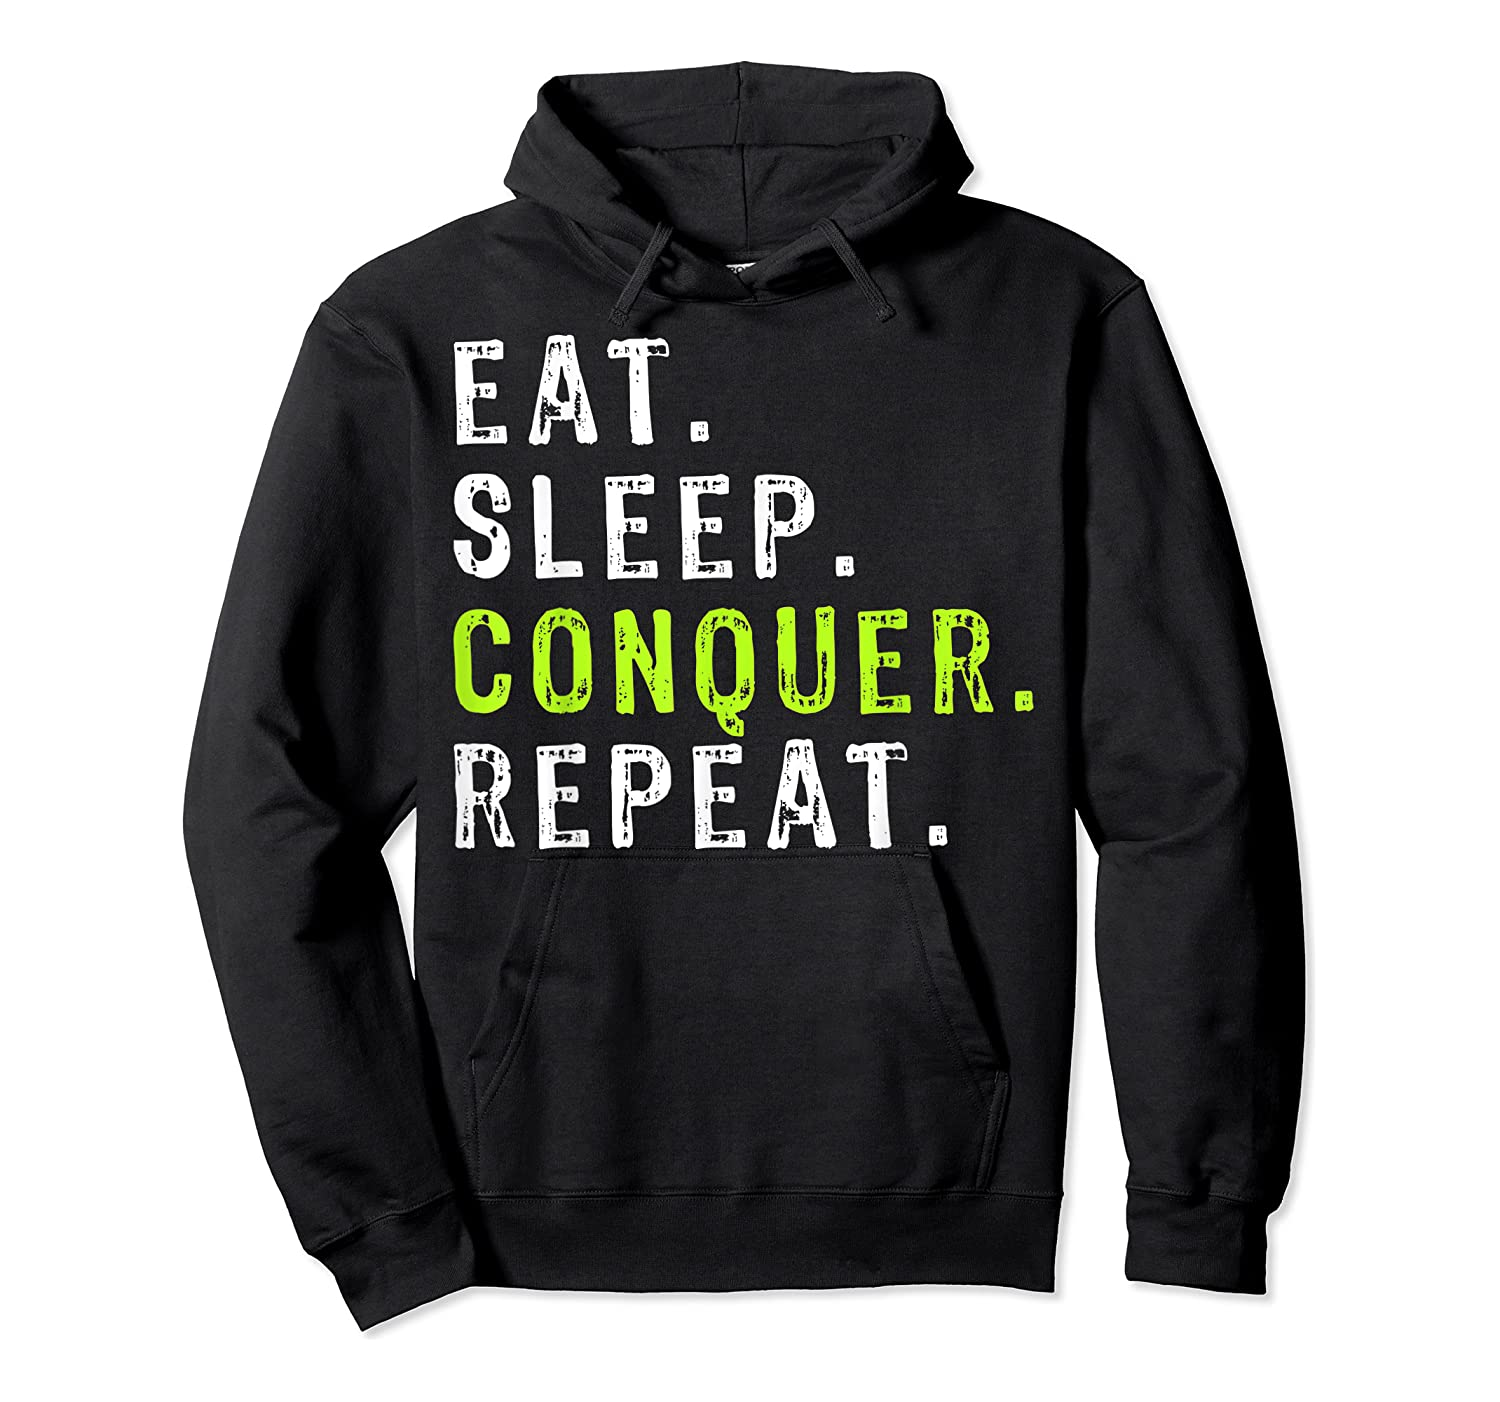 Eat Sleep Conquer Repeat Motivational Shirts Unisex Pullover Hoodie